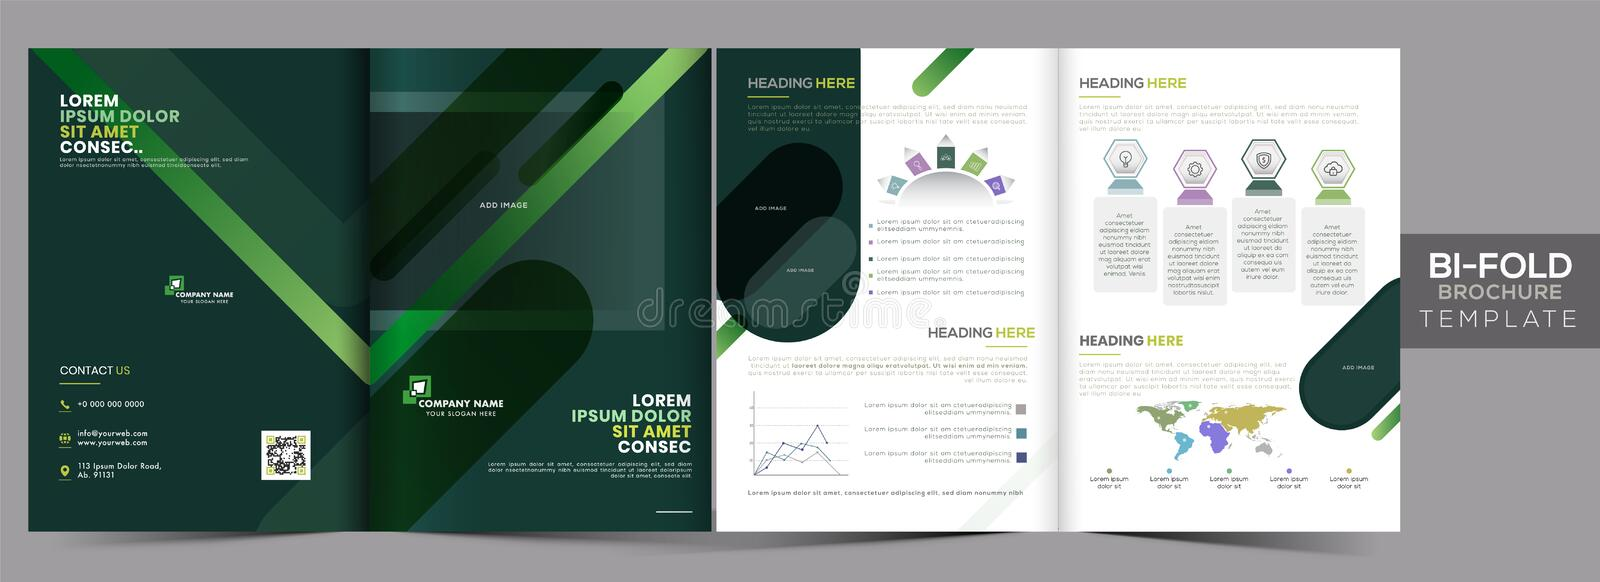 Business Bi-Fold Brochure Template Layout, Annual Report in Green and White Color 皇族释放例证